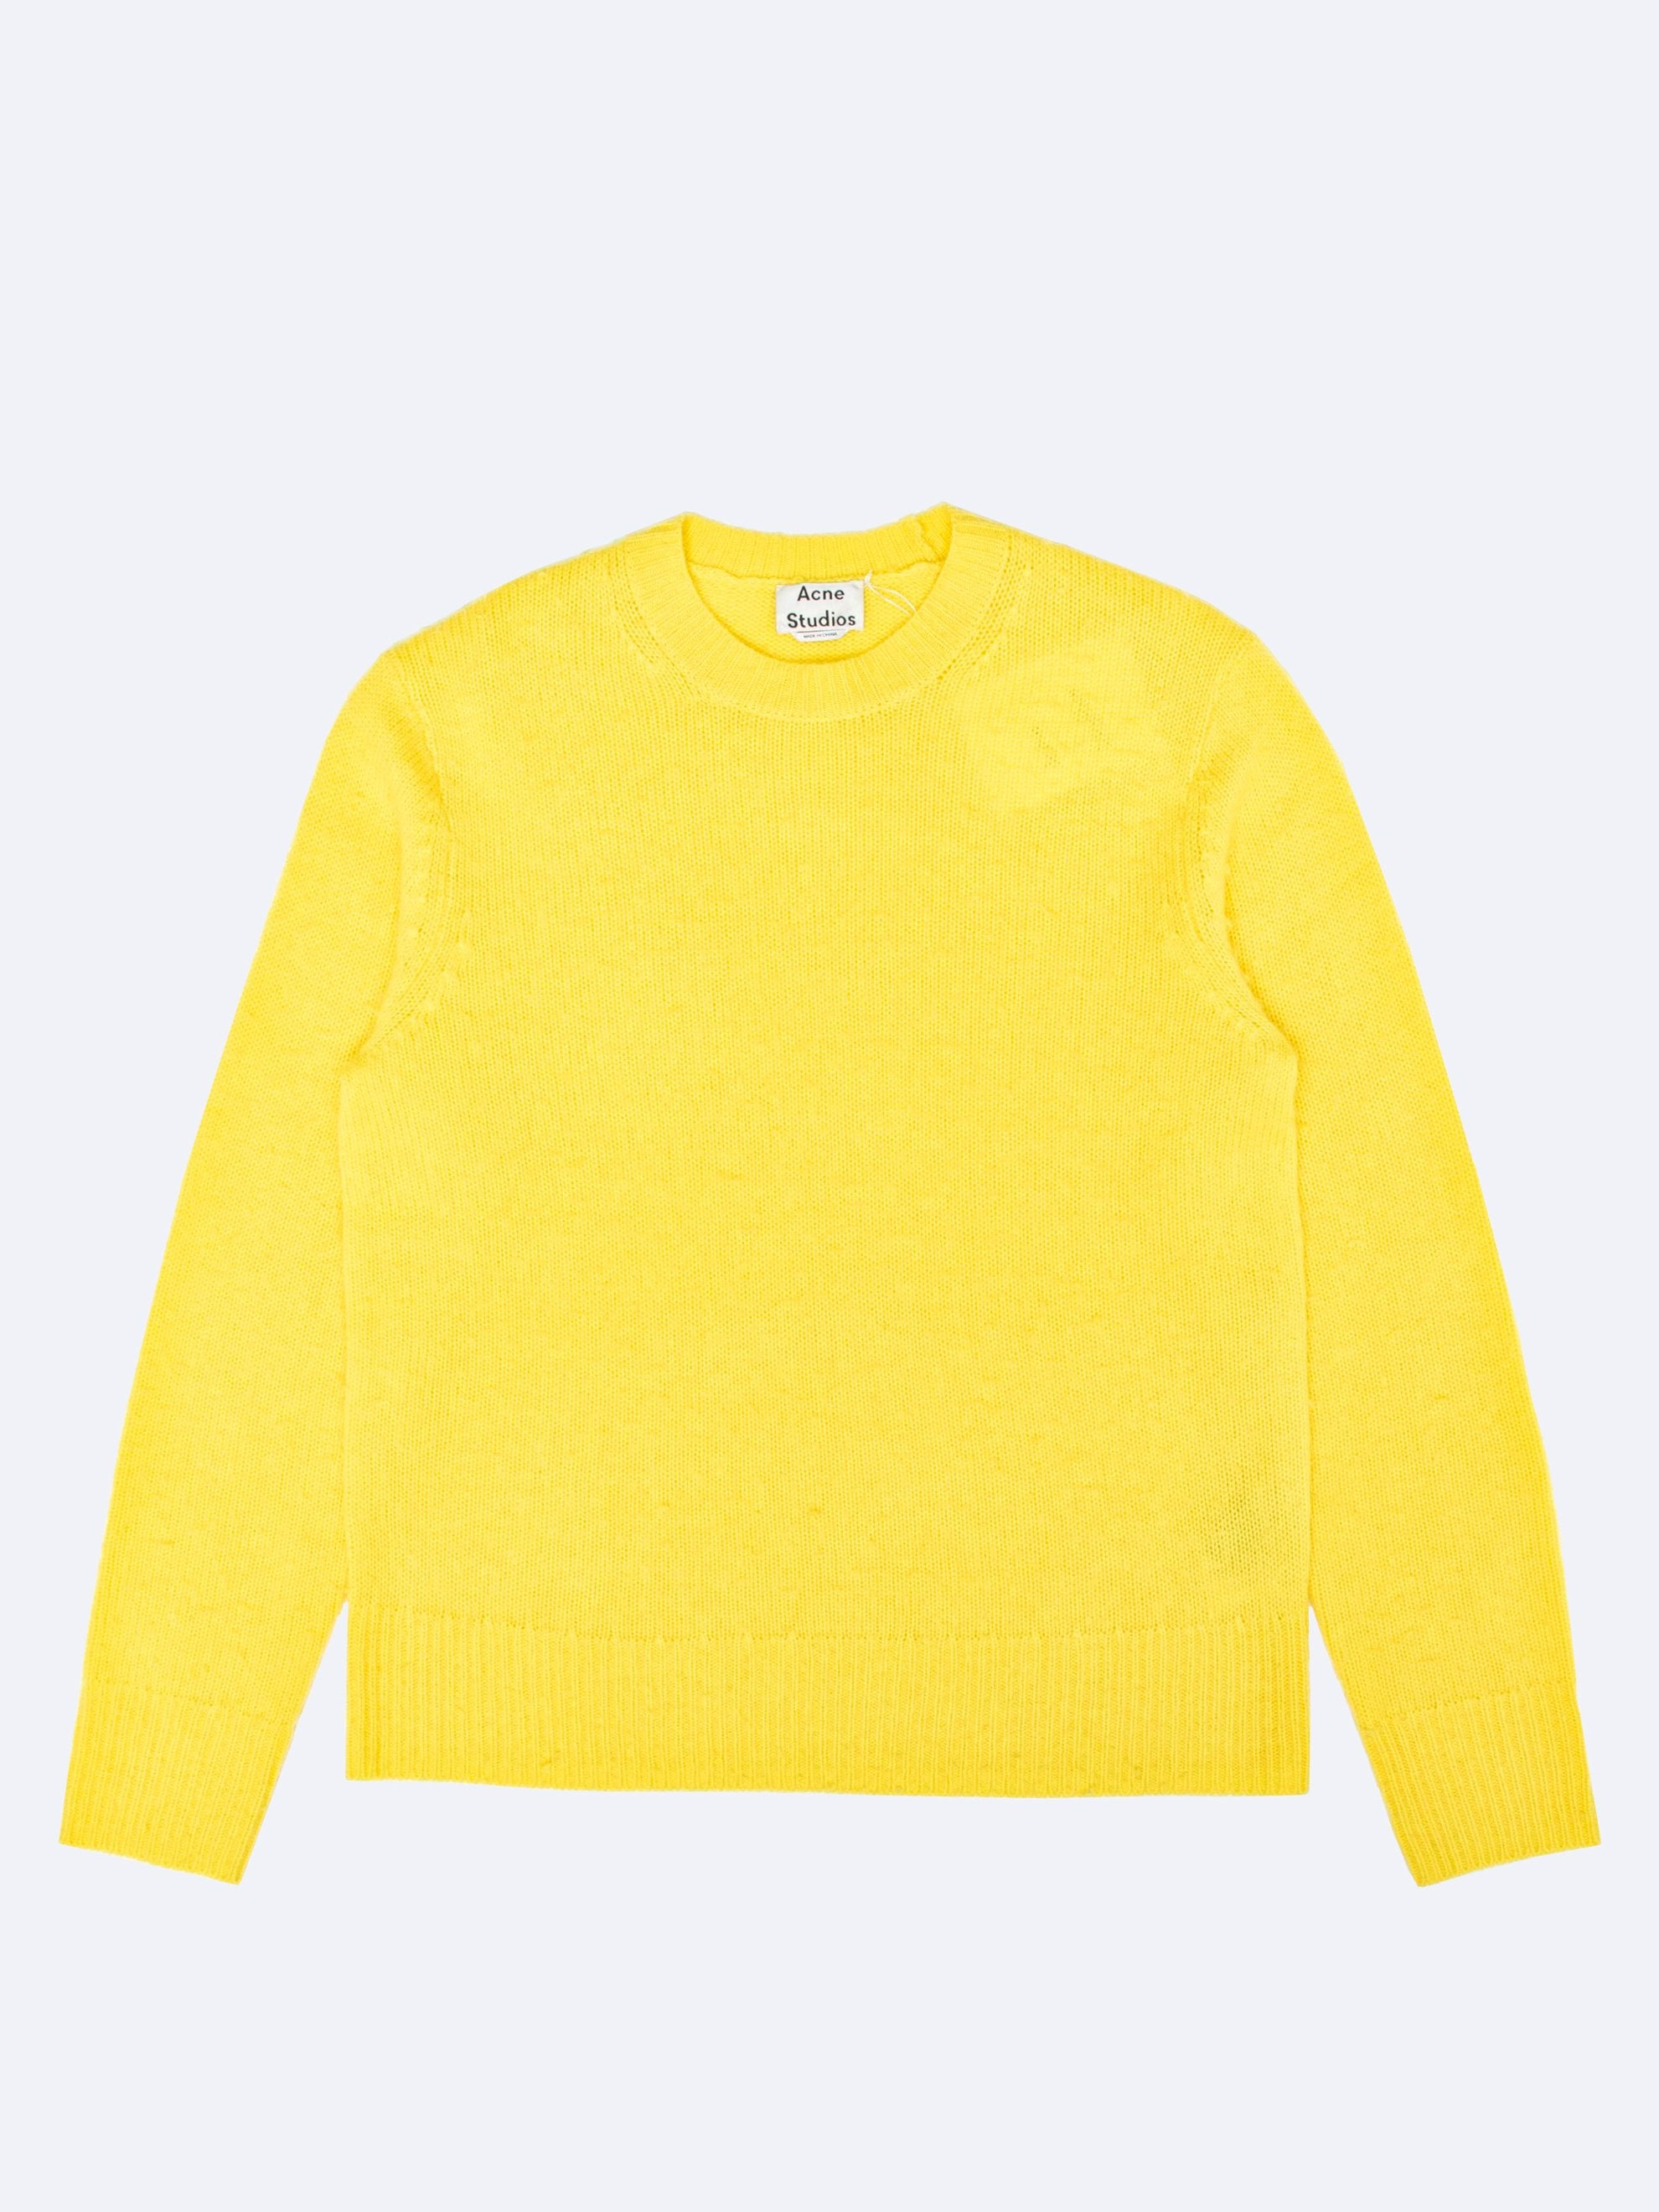 Peele Powder Sweater